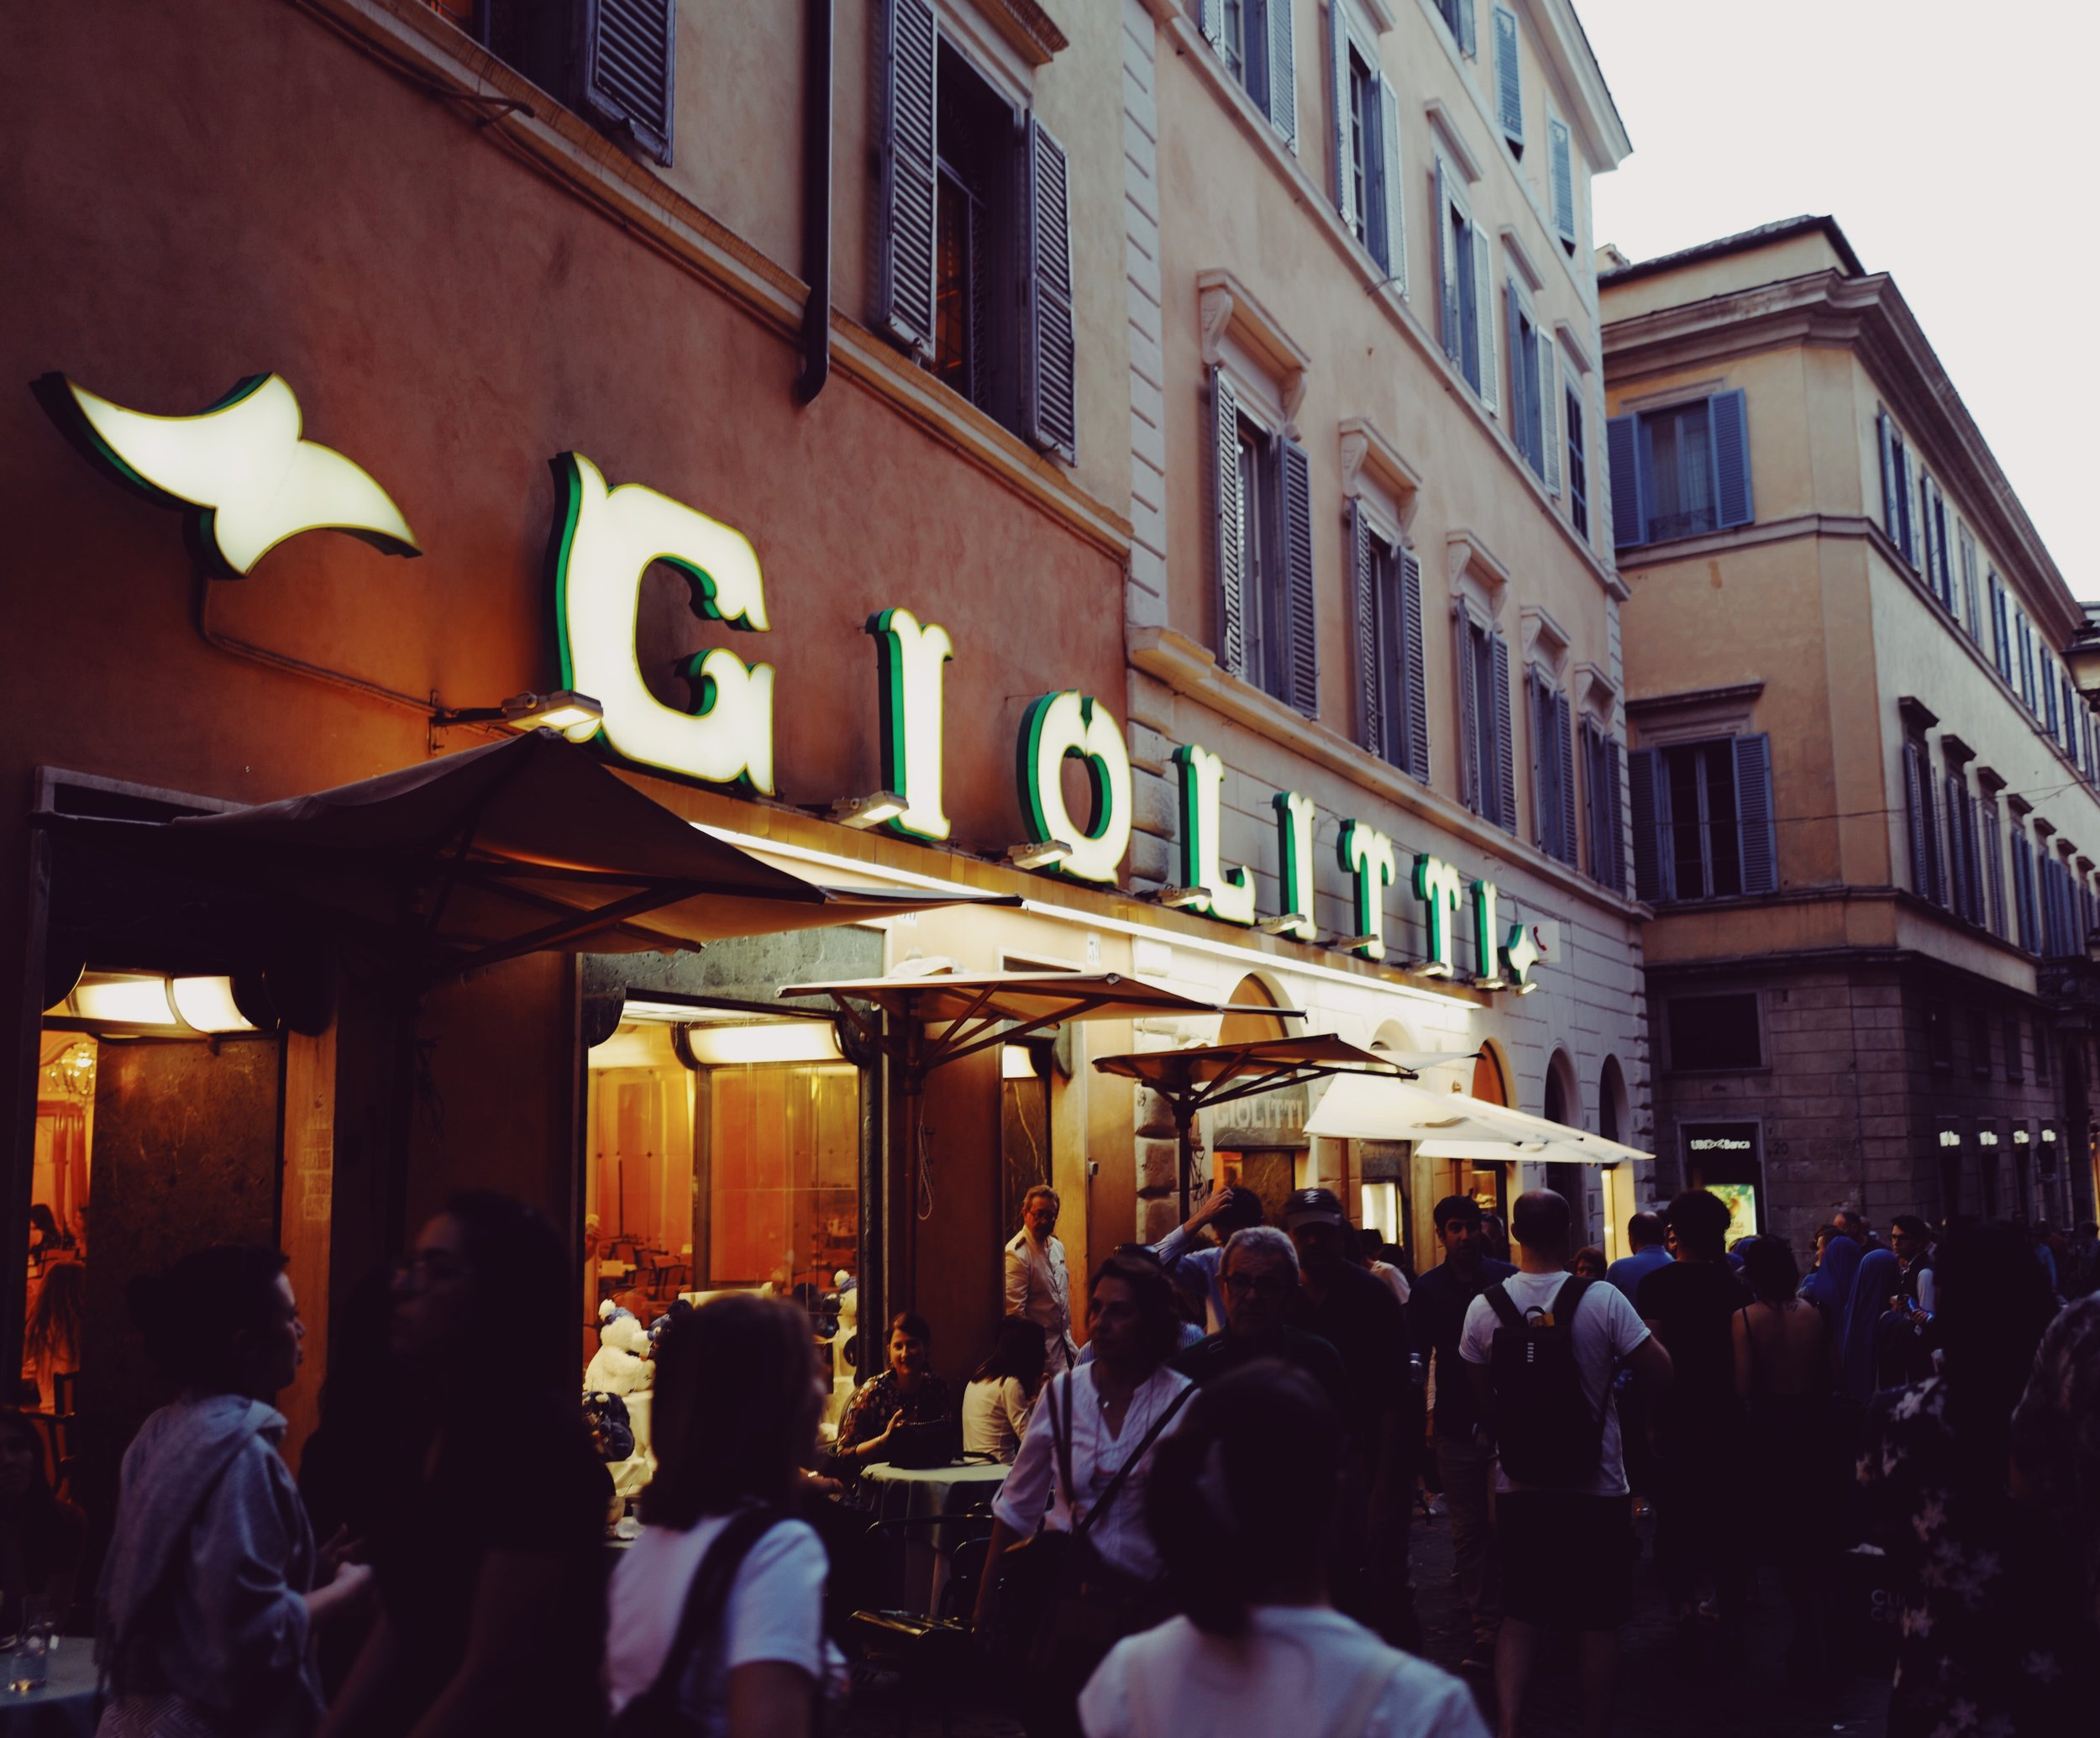 Giolitti: Conveniently located in the center of Rome.